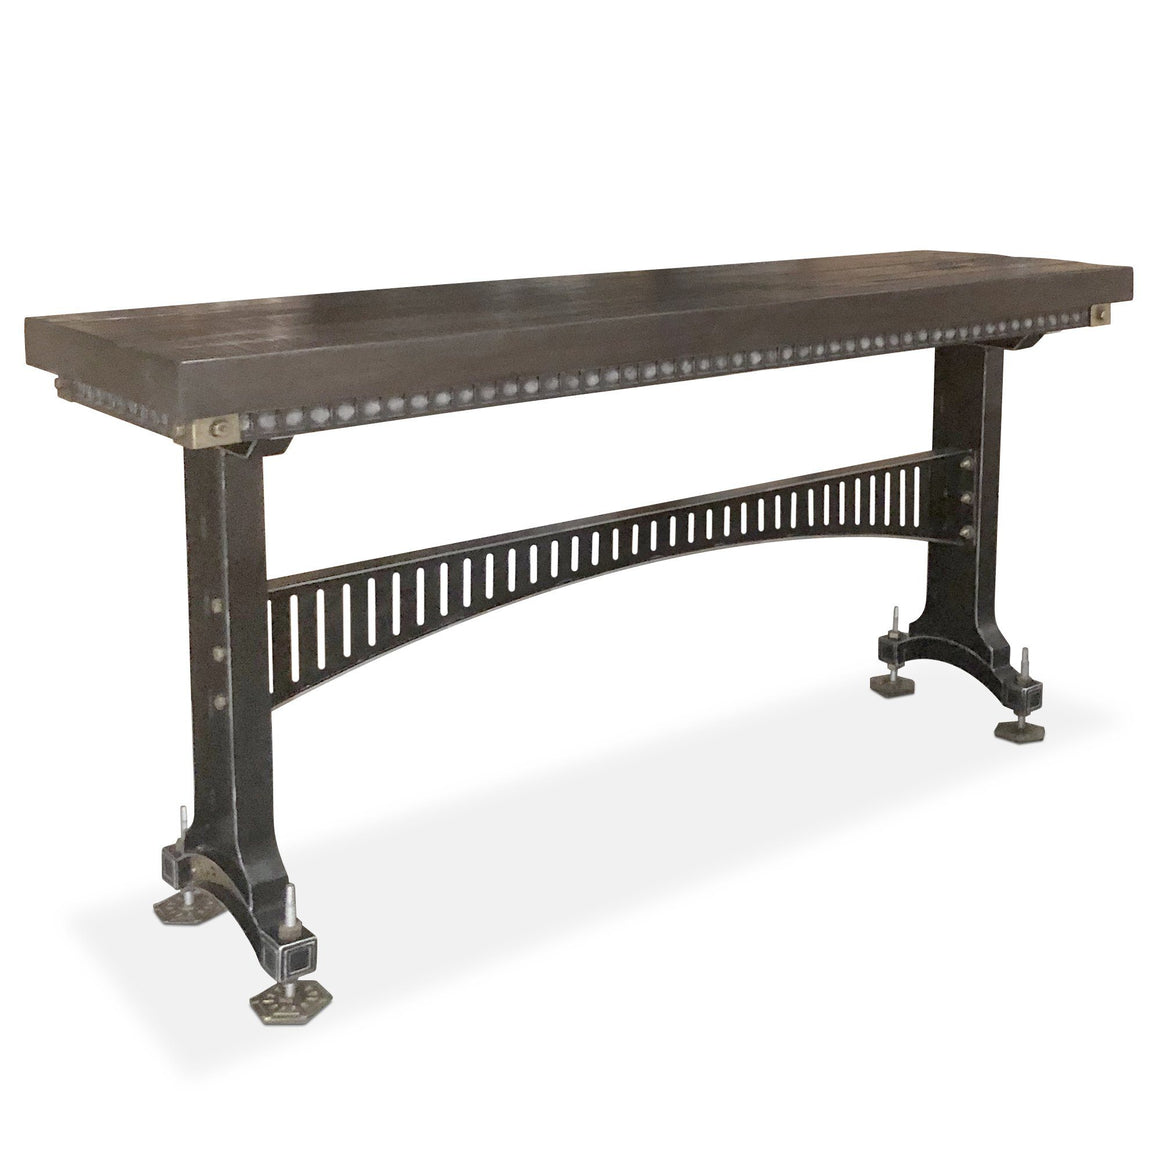 Industrial Adjustable Height Sofa Table - Steel Brass - Brunel - Dark Dining Table Rustic Deco